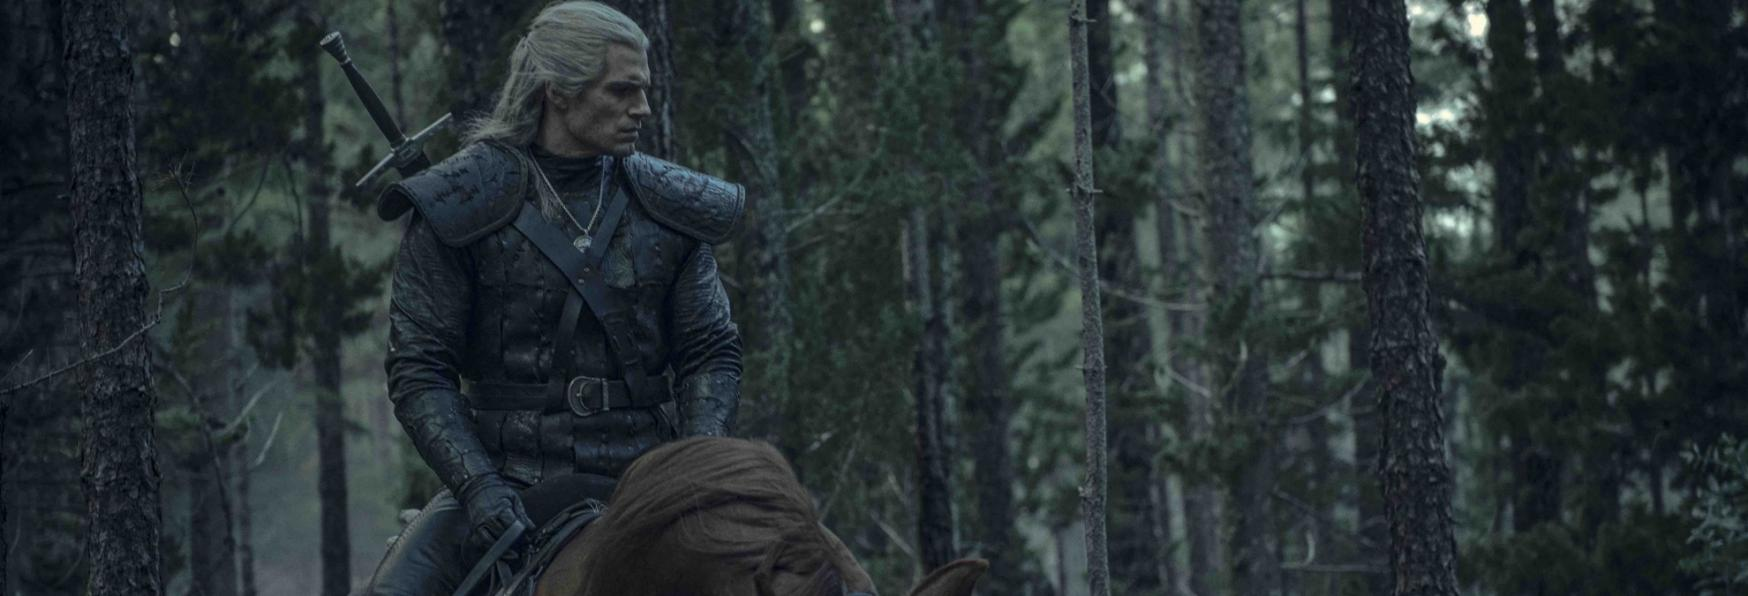 The Witcher: Blood Origin - Svelata la Data di Inizio Riprese della nuova Serie TV Spin-off